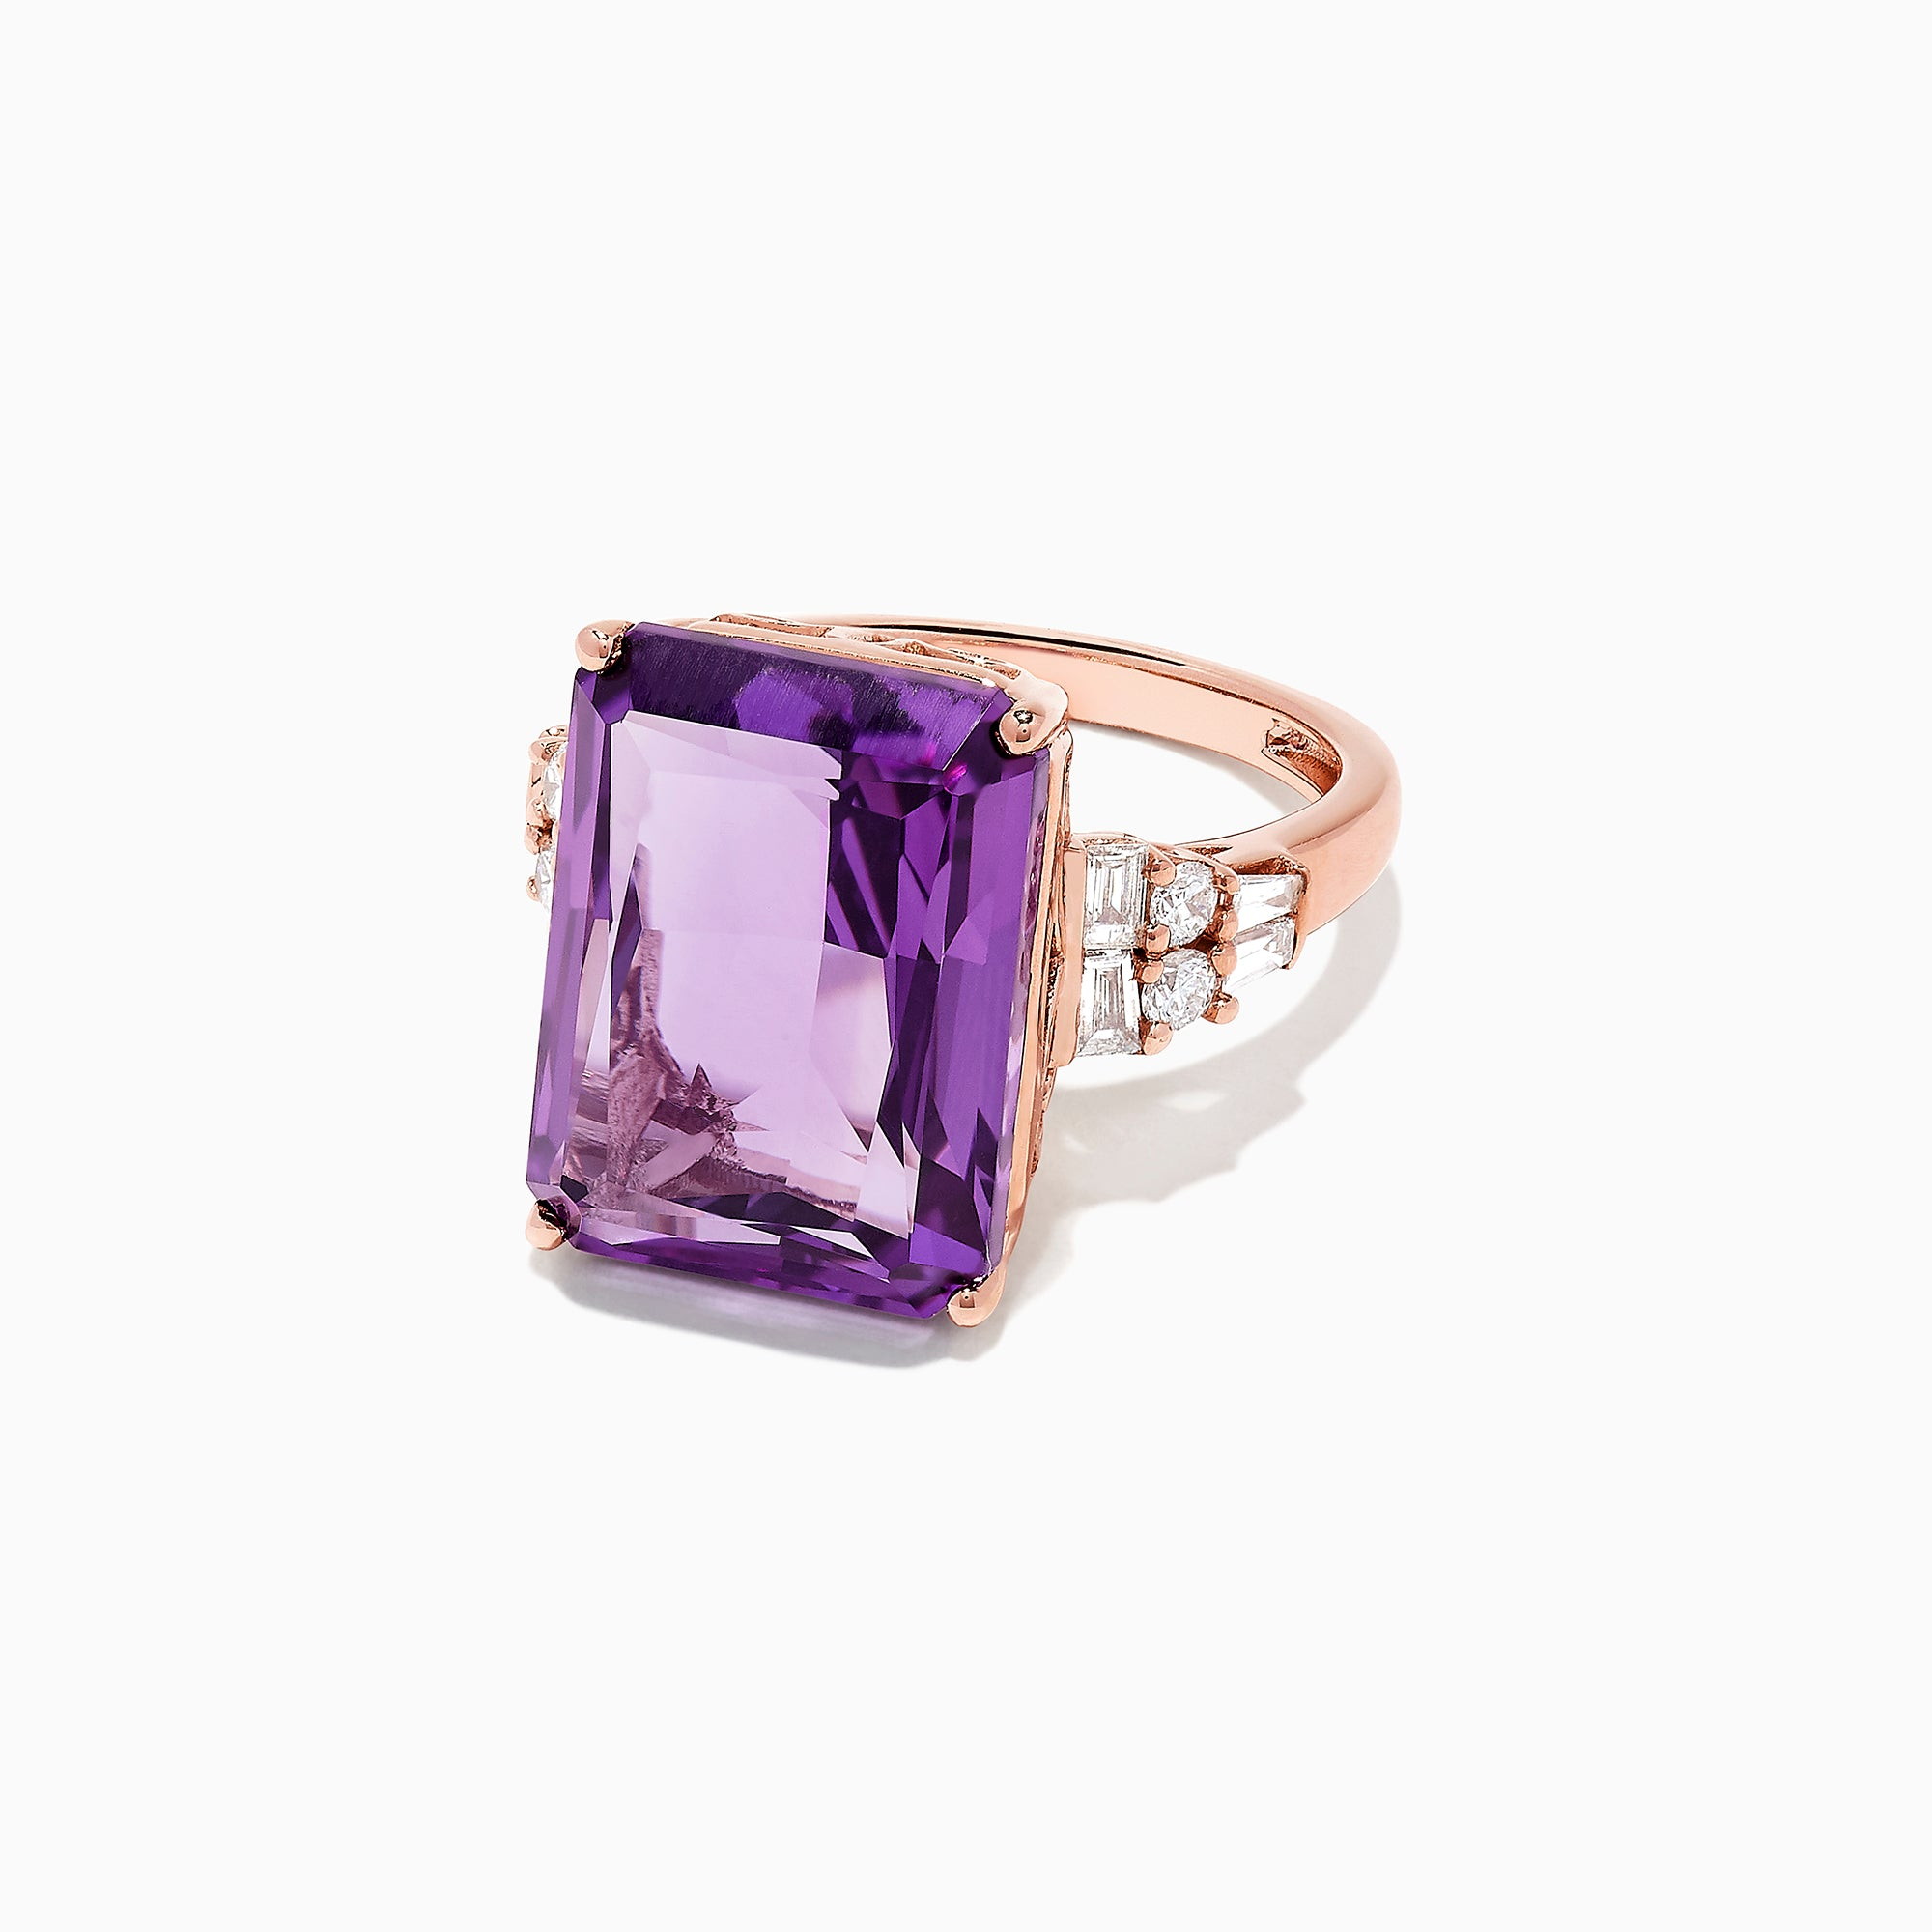 Effy 14K Rose Gold Amethyst and Diamond Cocktail Ring, 11.94 TCW